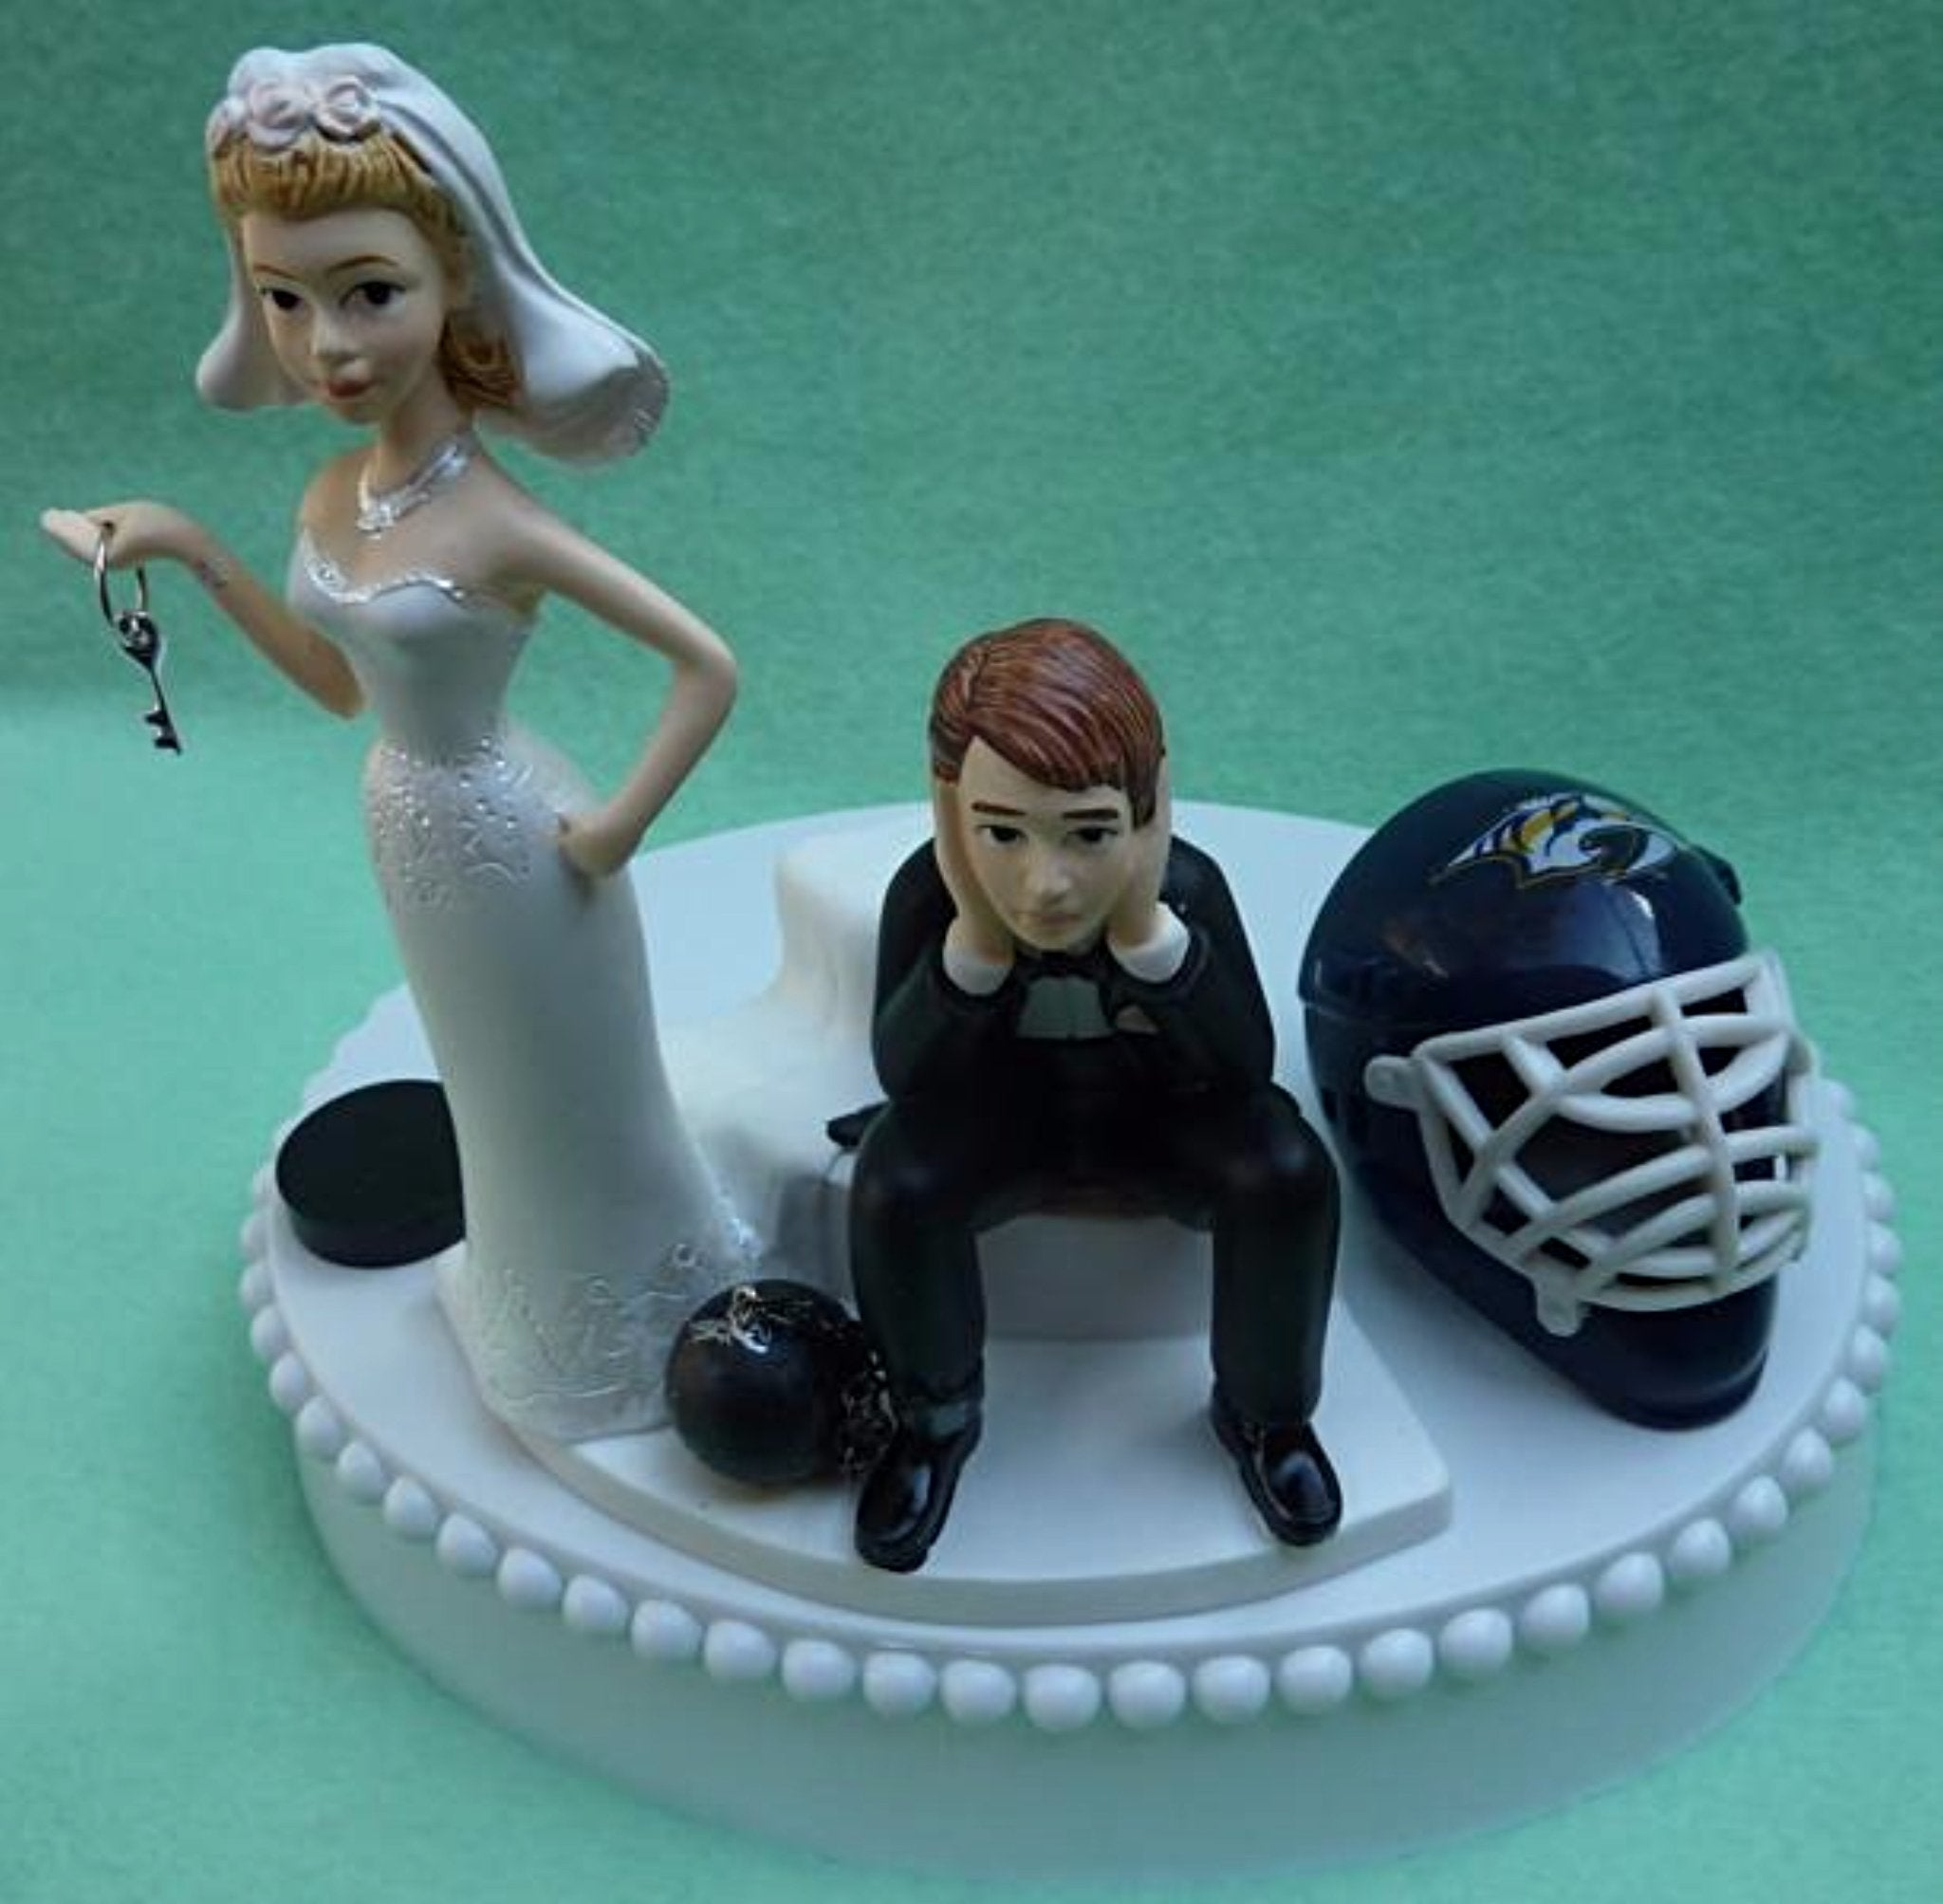 Nashville Predators wedding cake topper Preds NHL hockey bride groom dejected sports fans fun humorous mask puck helmet unique Fun Wedding Things reception gift